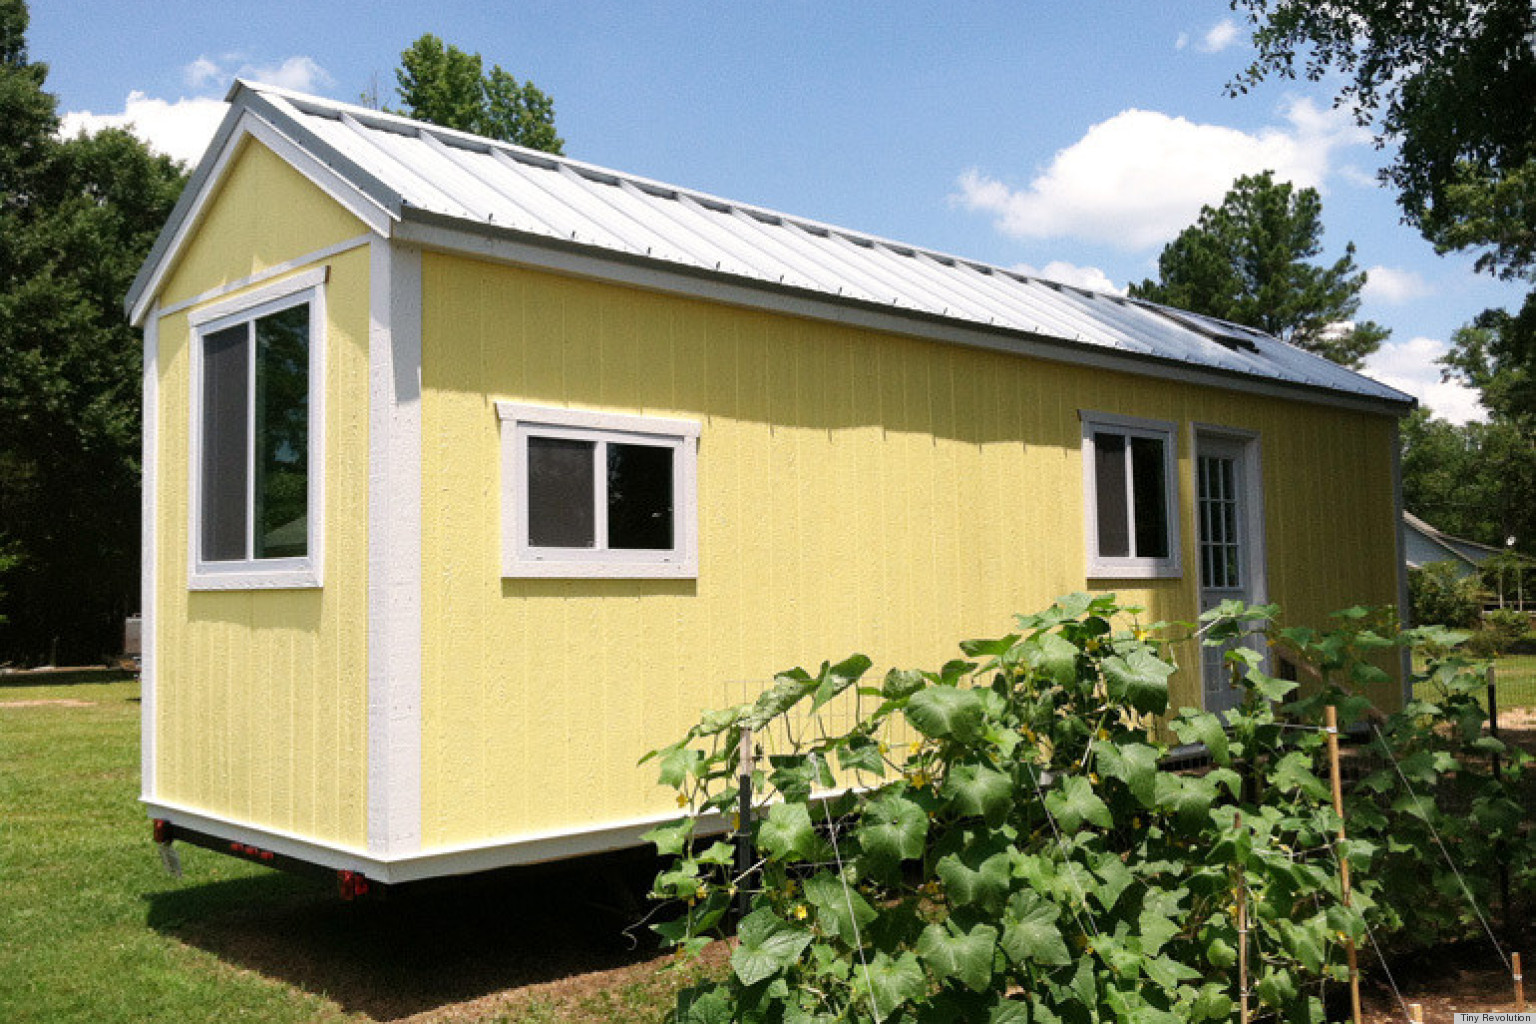 20 Tiny Homes From Around The World Photos Video